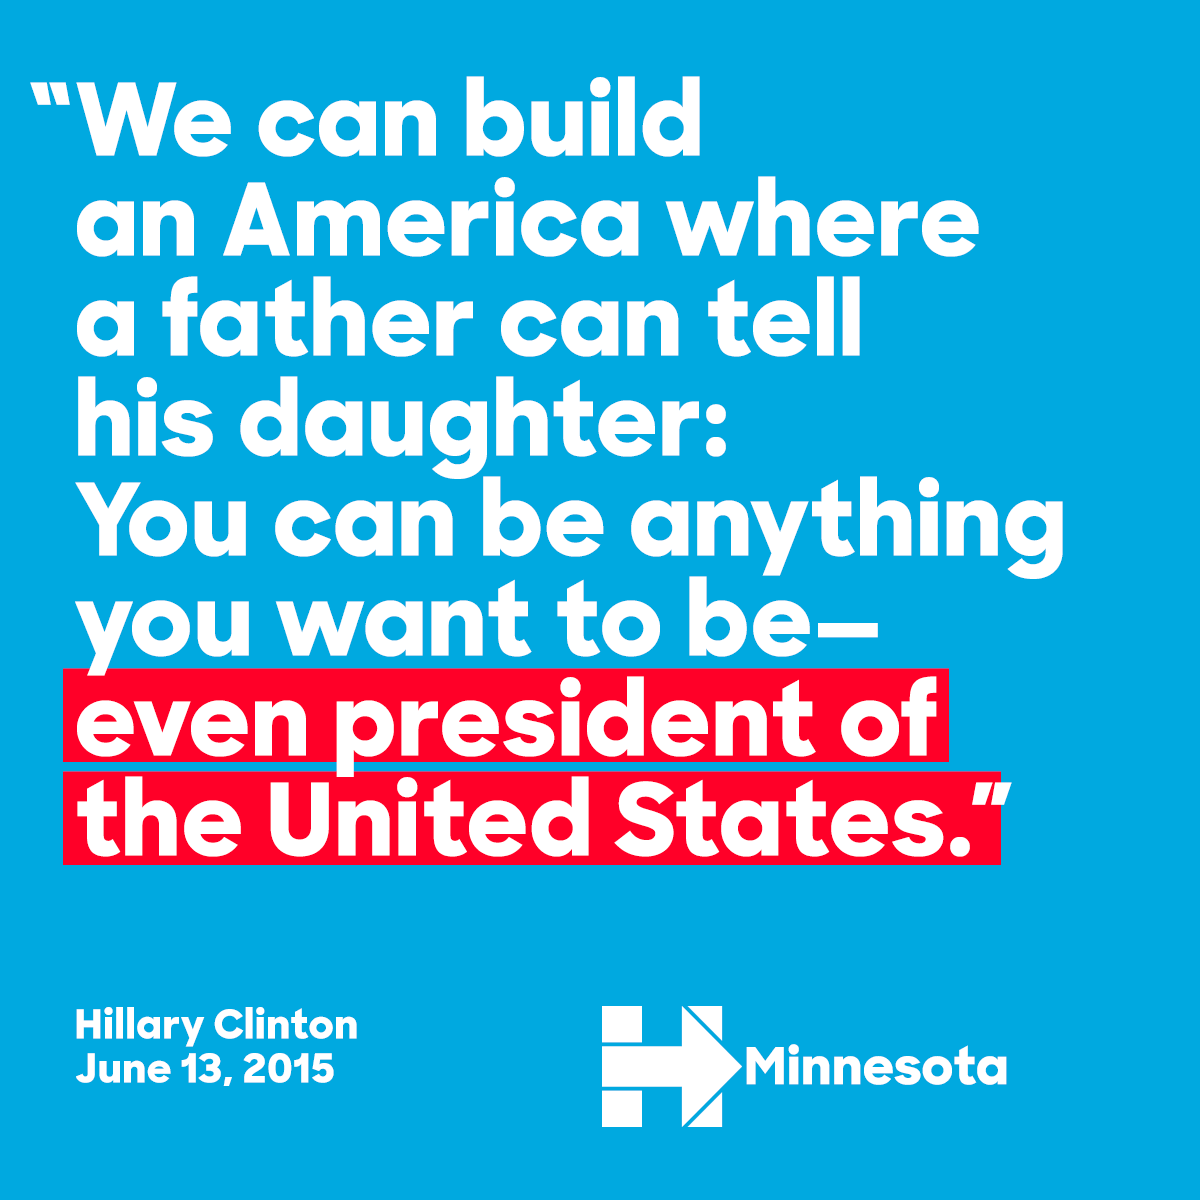 quote-HRC-MN-072116A.png